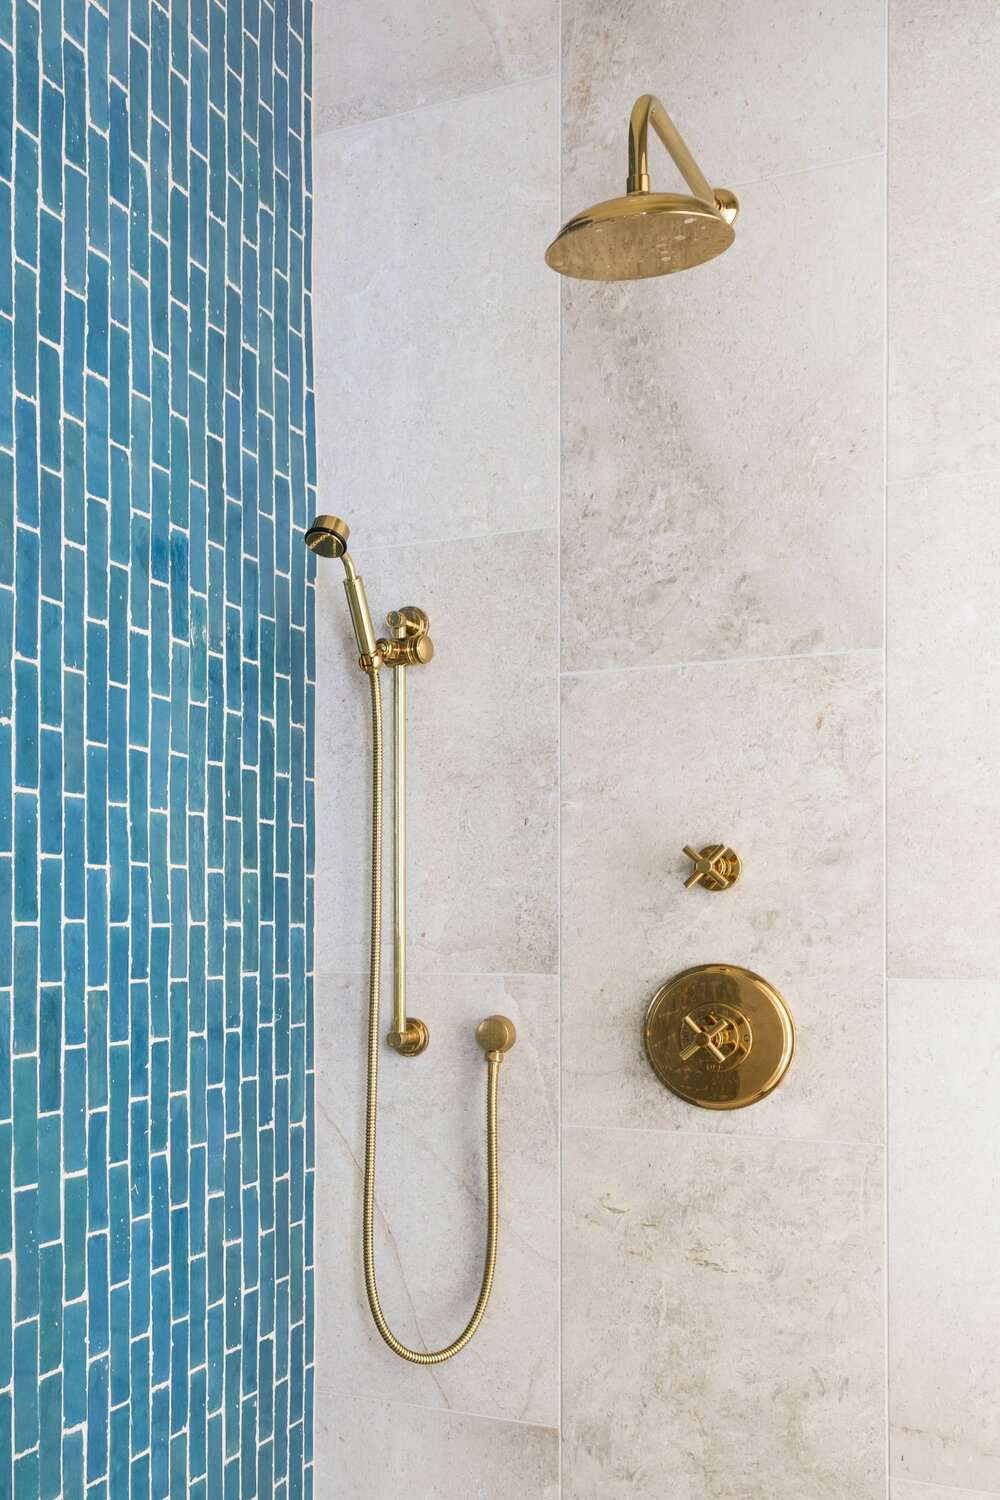 A shower with a beige-tiled wall and a blue-tiled accent wall